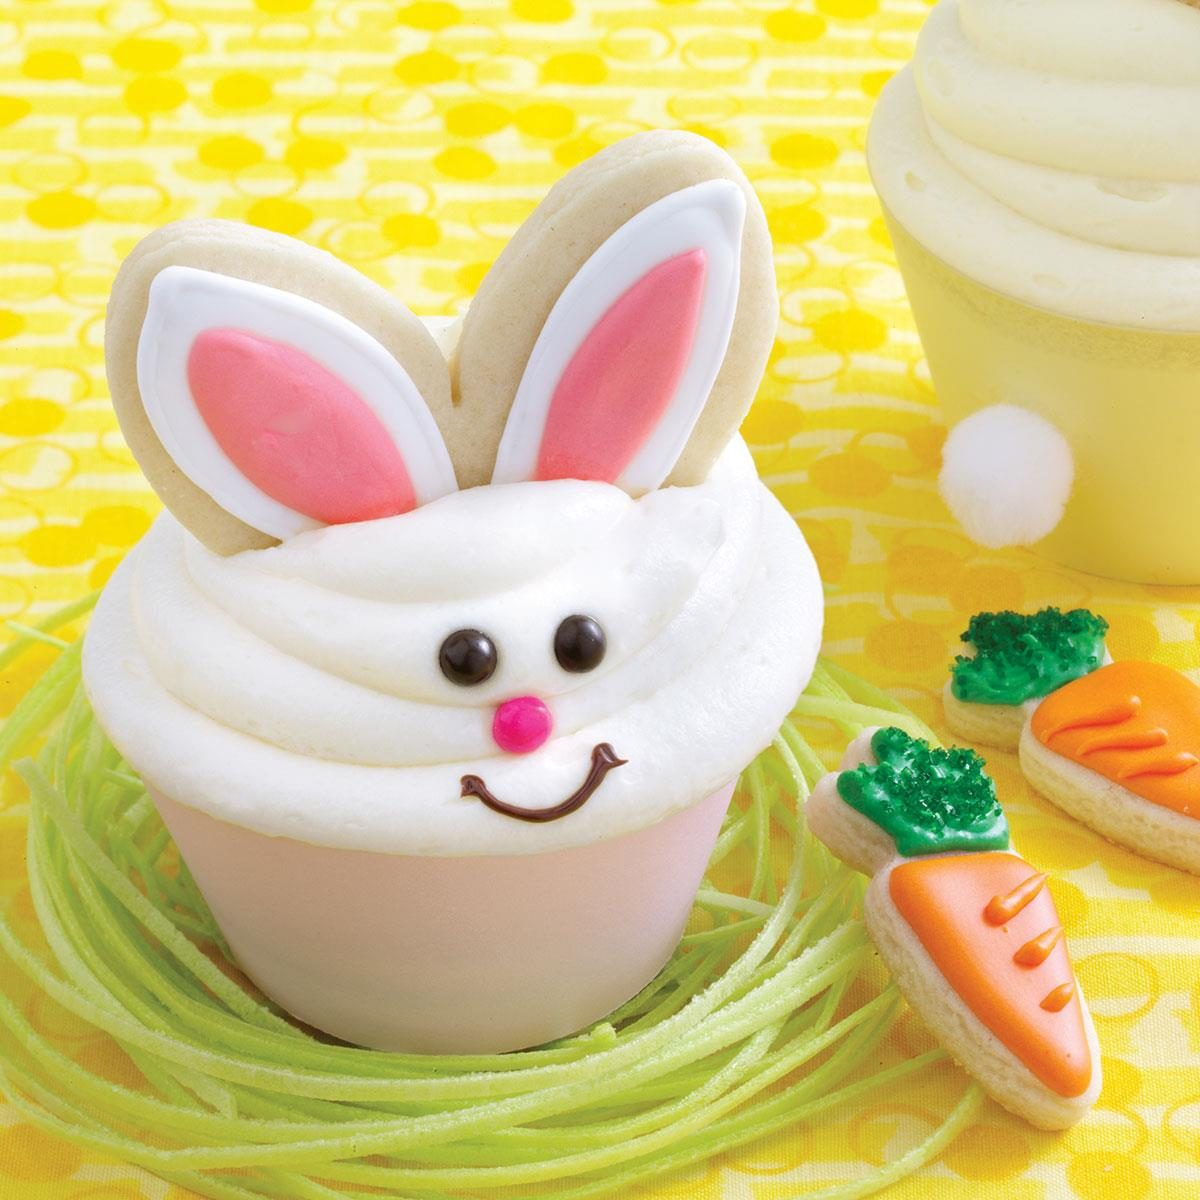 15 Animal-Shaped Foods That Kids Love To Eat